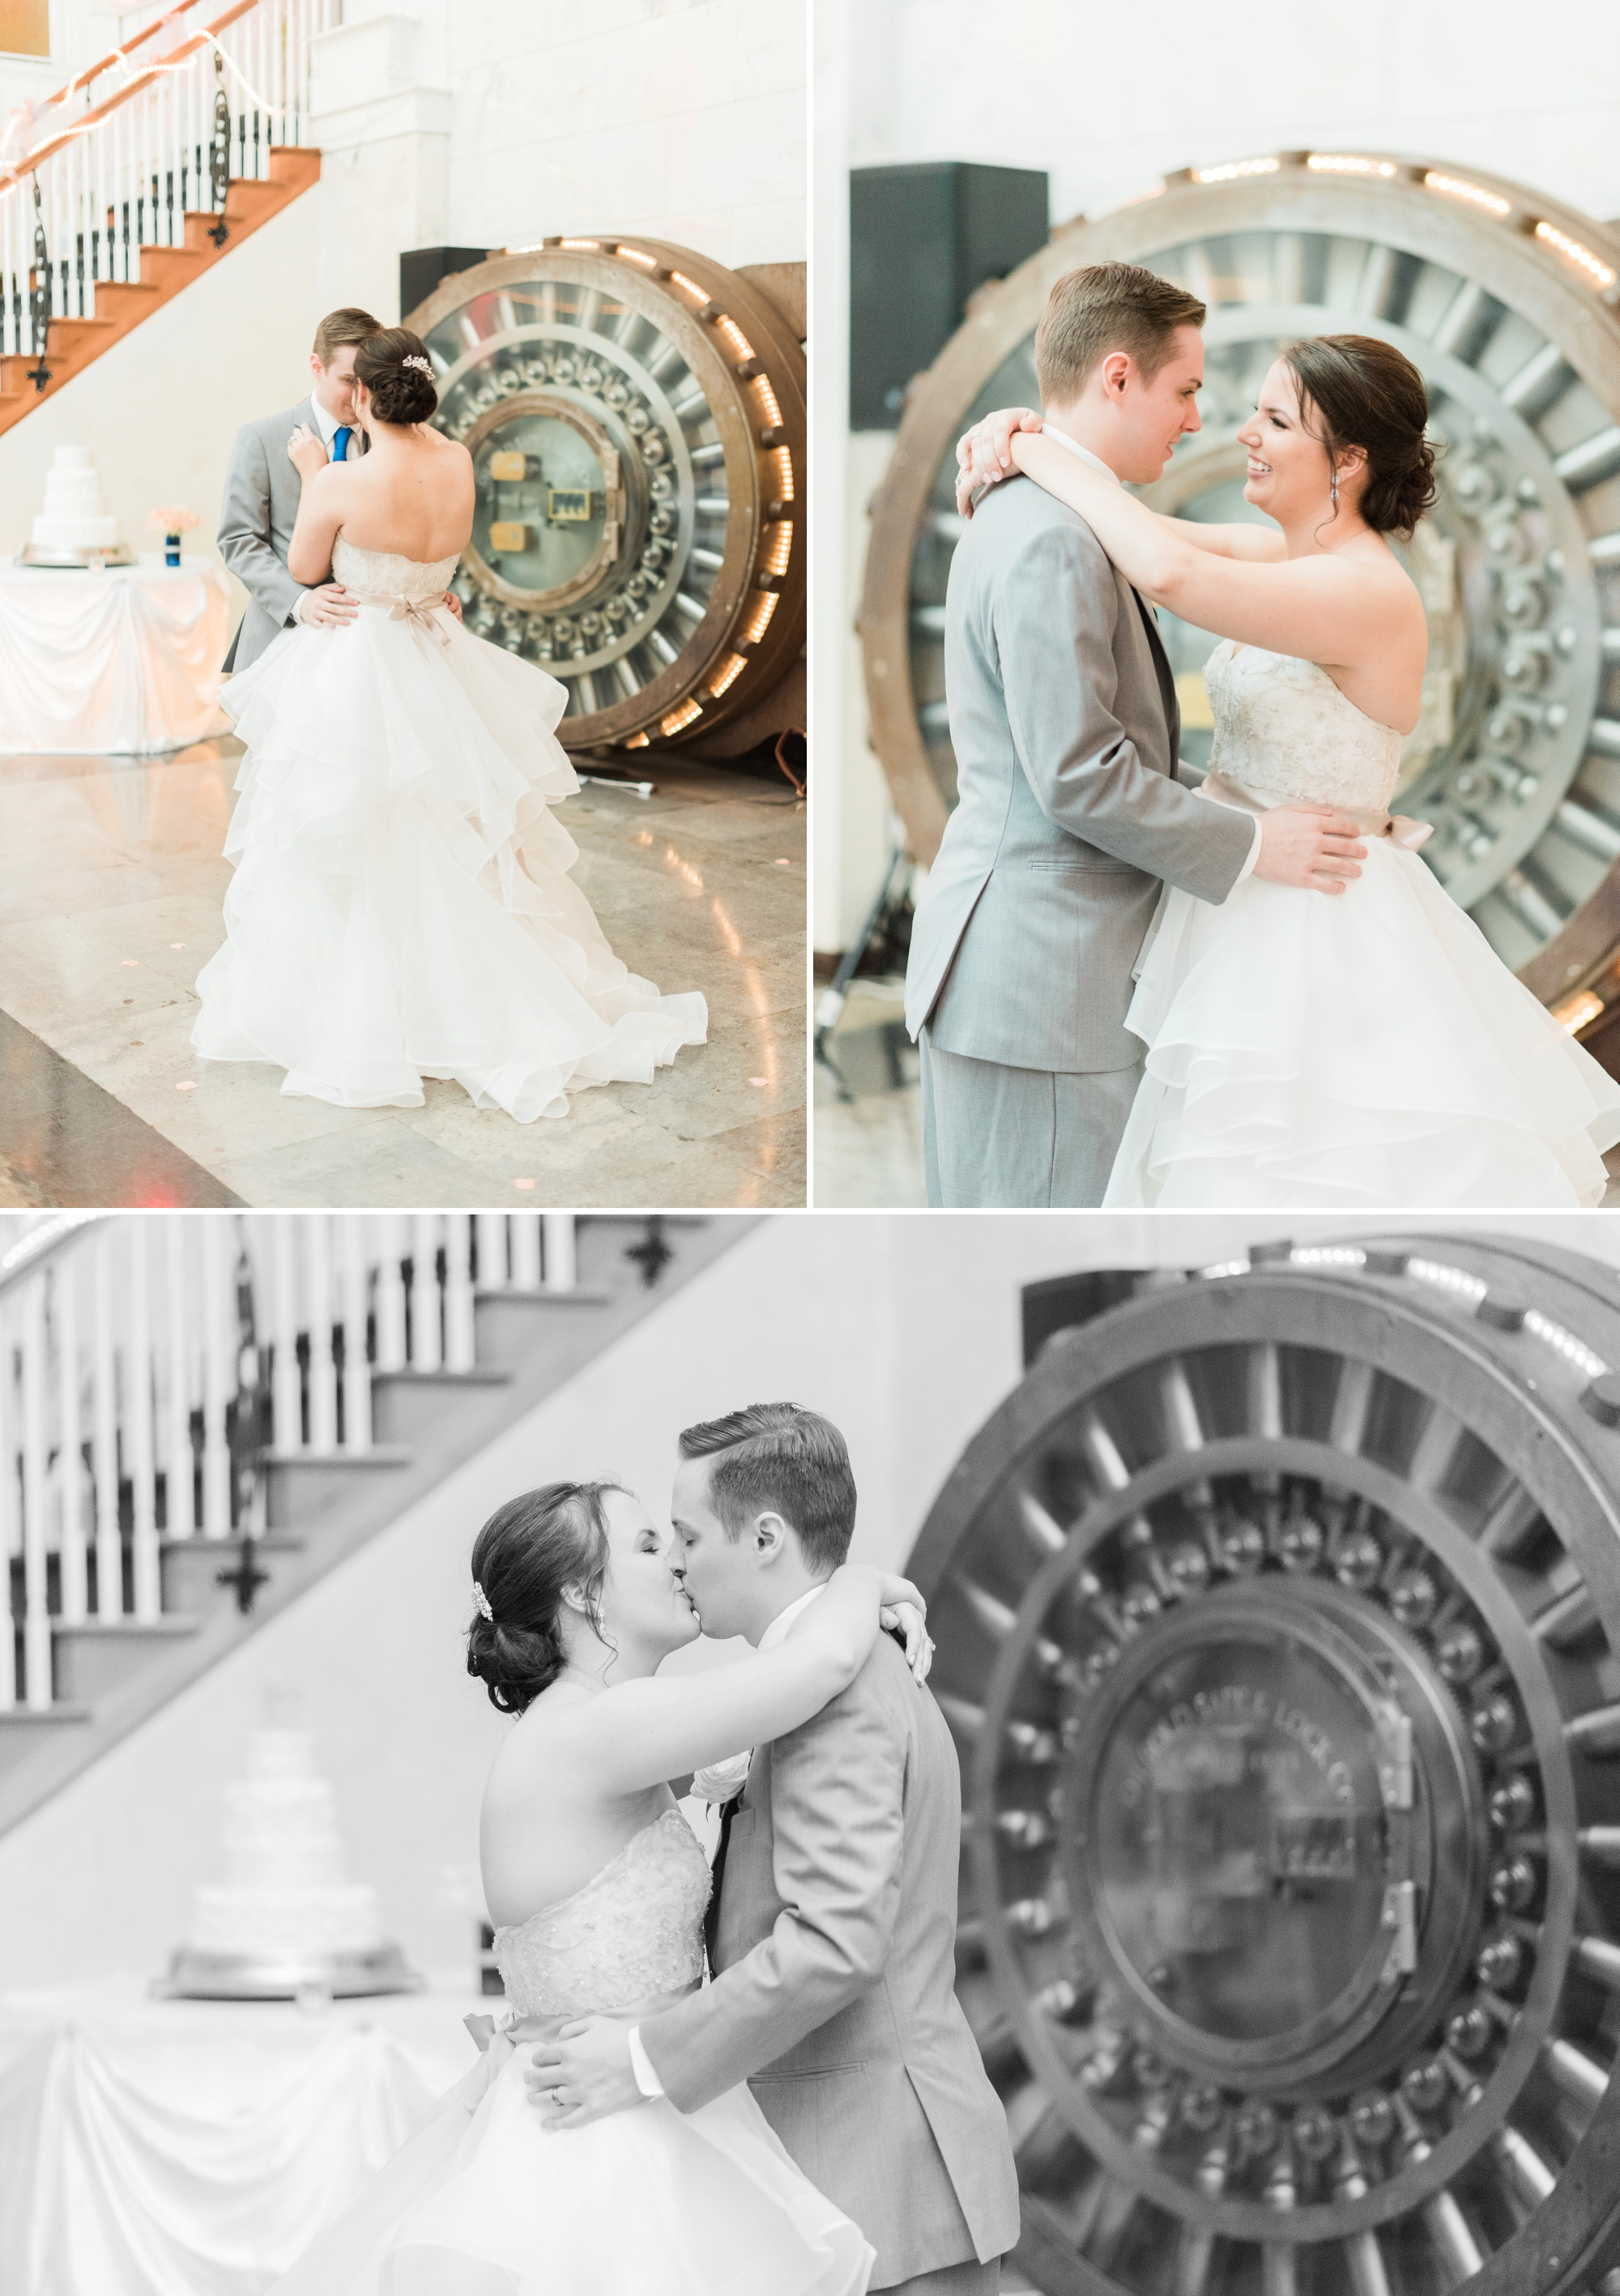 the-vault-columbus-ohio-wedding-emily-chris_0006.jpg